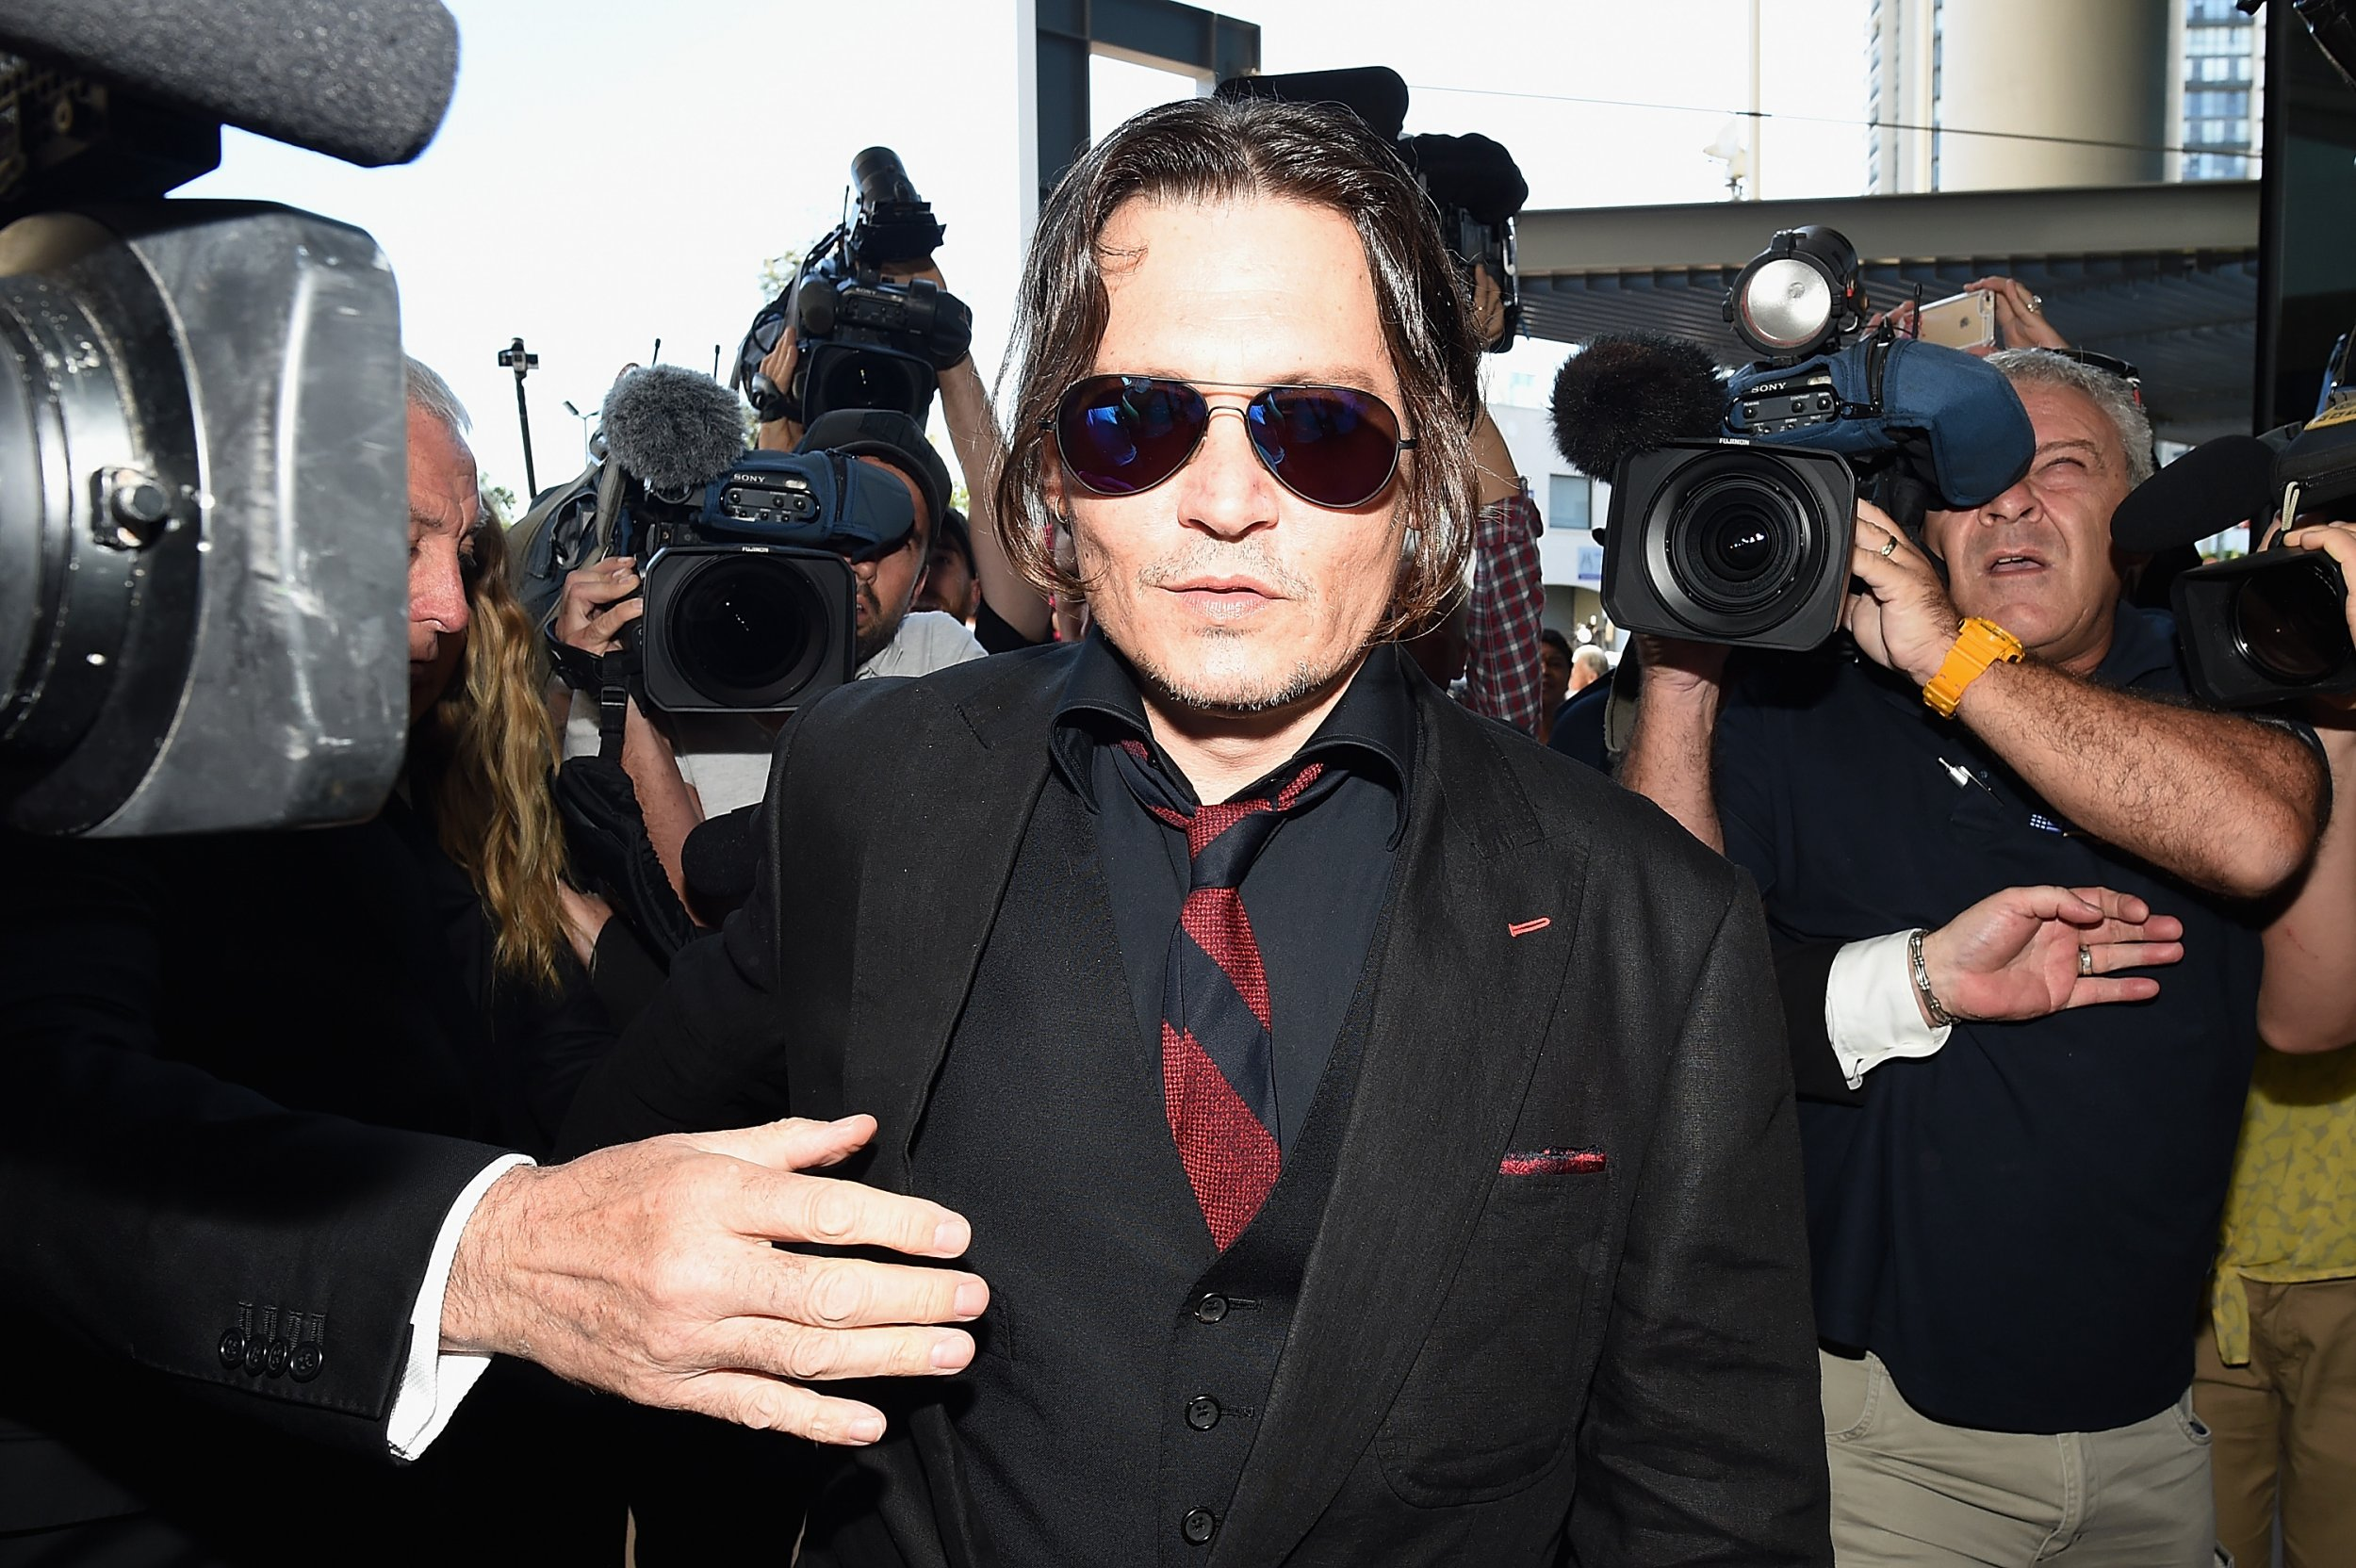 Johnny Depp arriving at court in Australia.